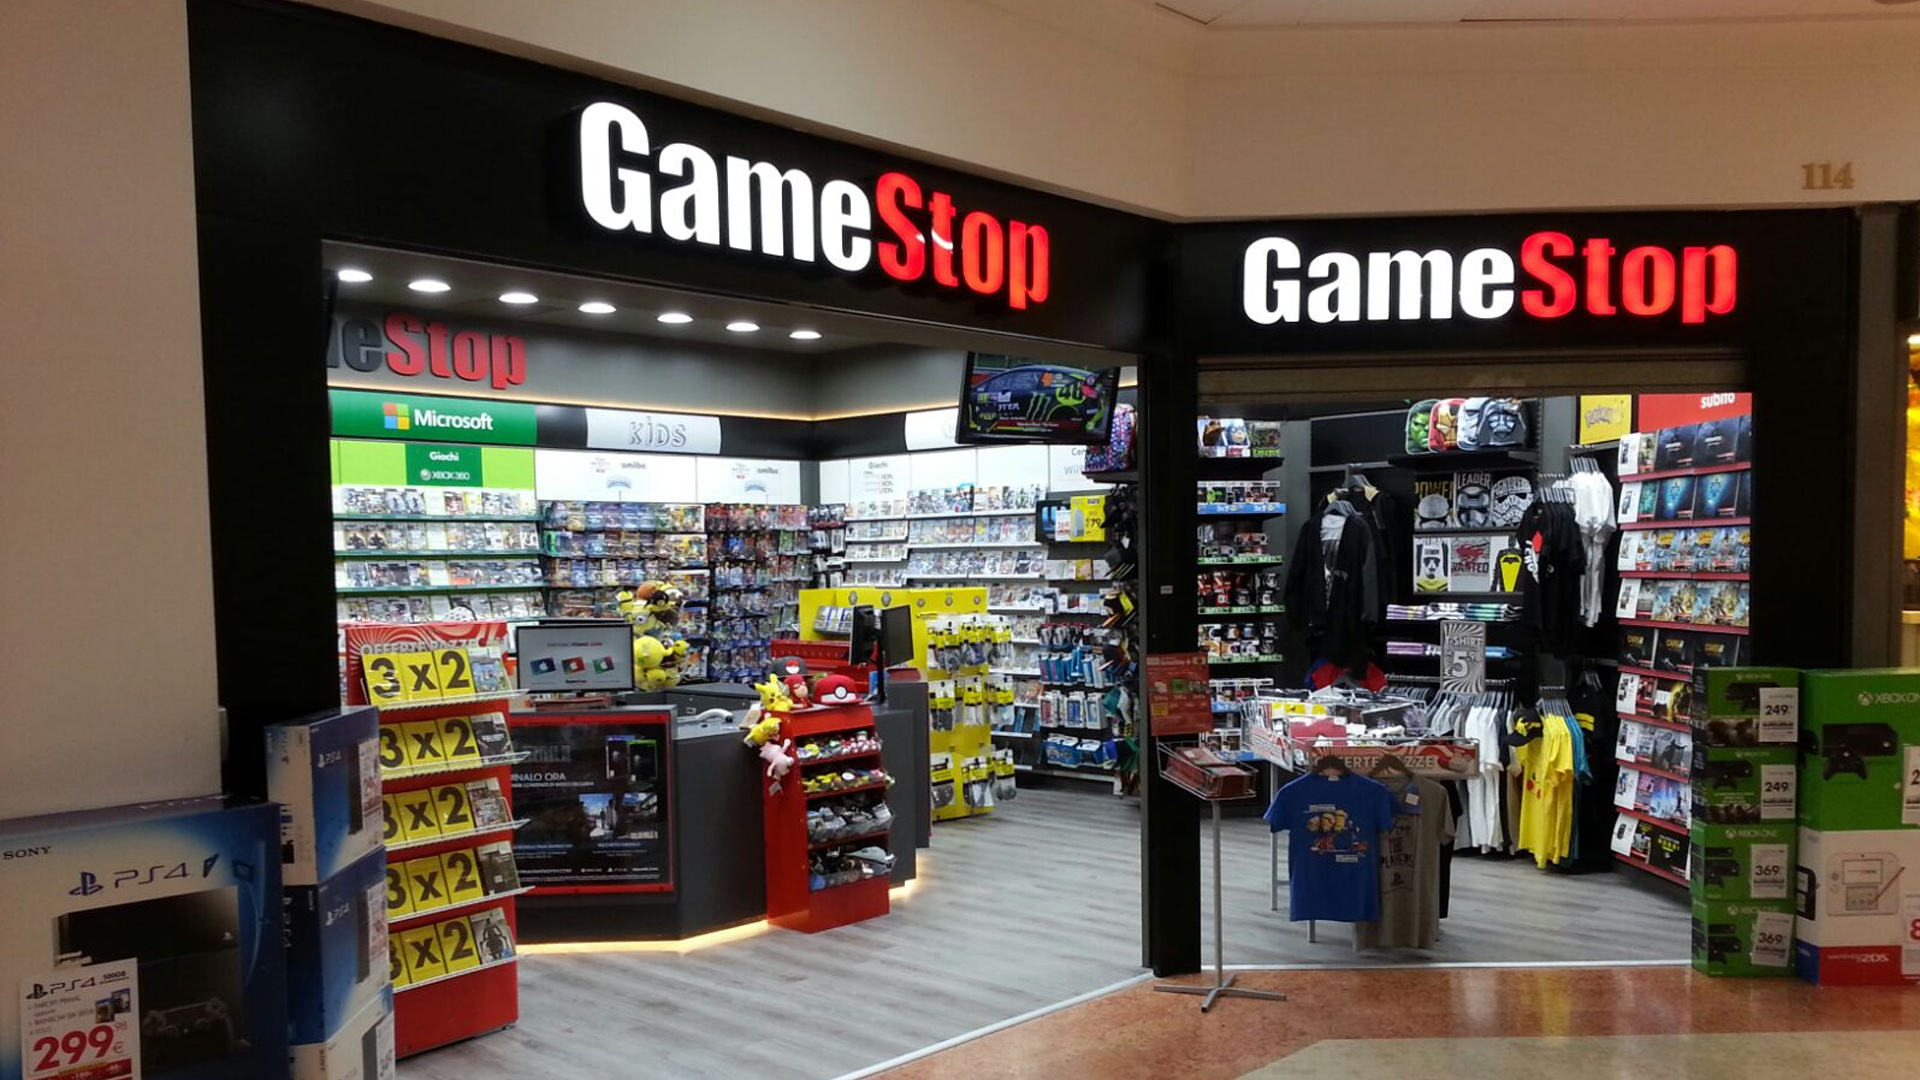 gamestop - photo #31